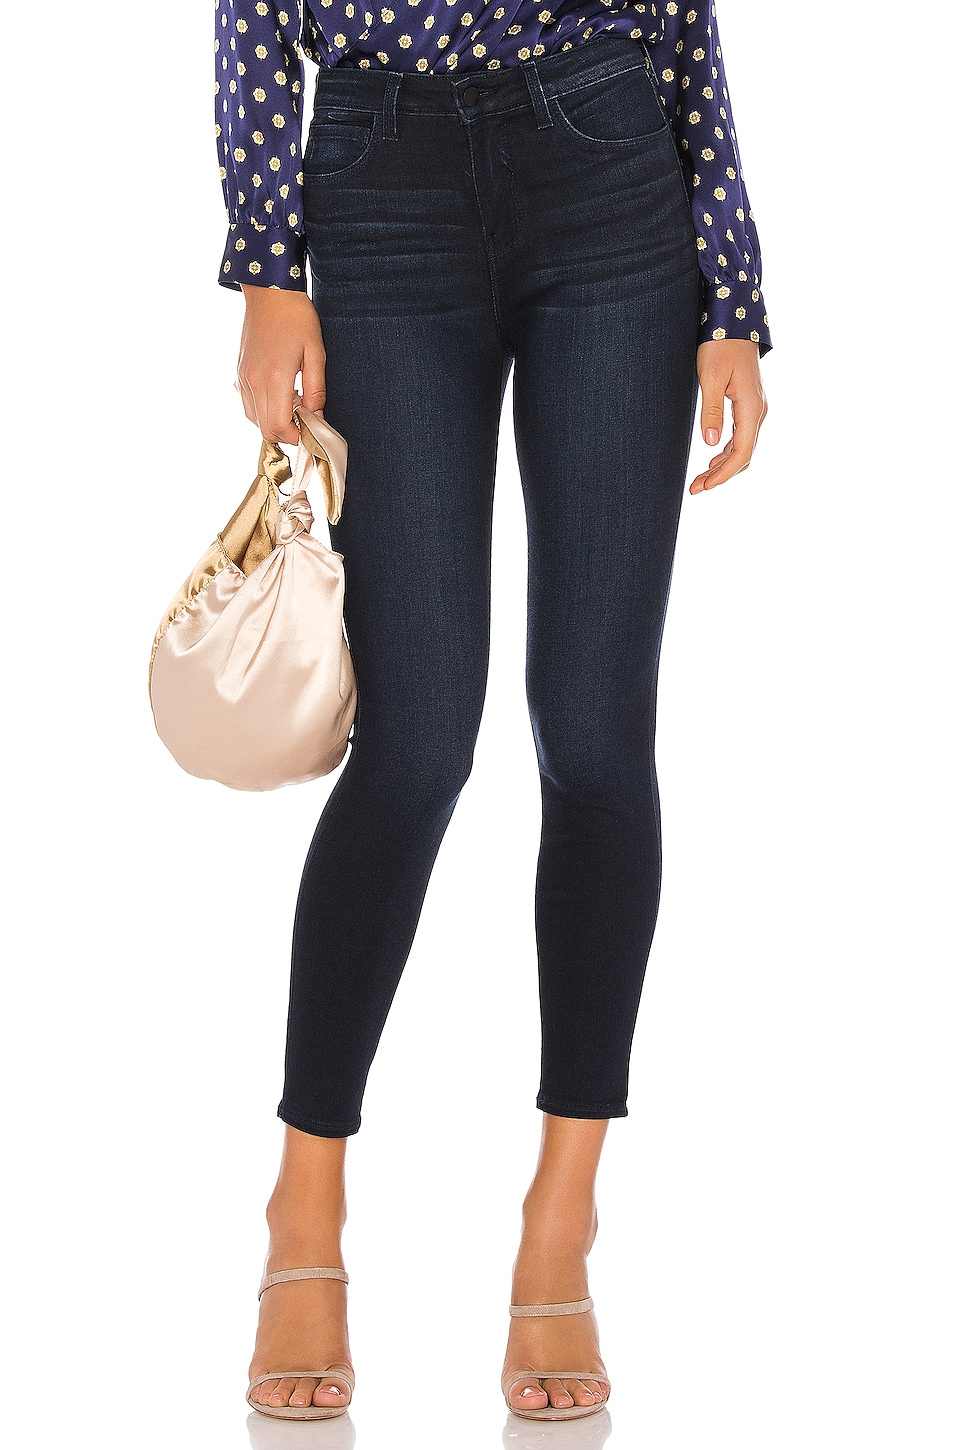 L'AGENCE Margot High Rise Skinny en Marino Blue